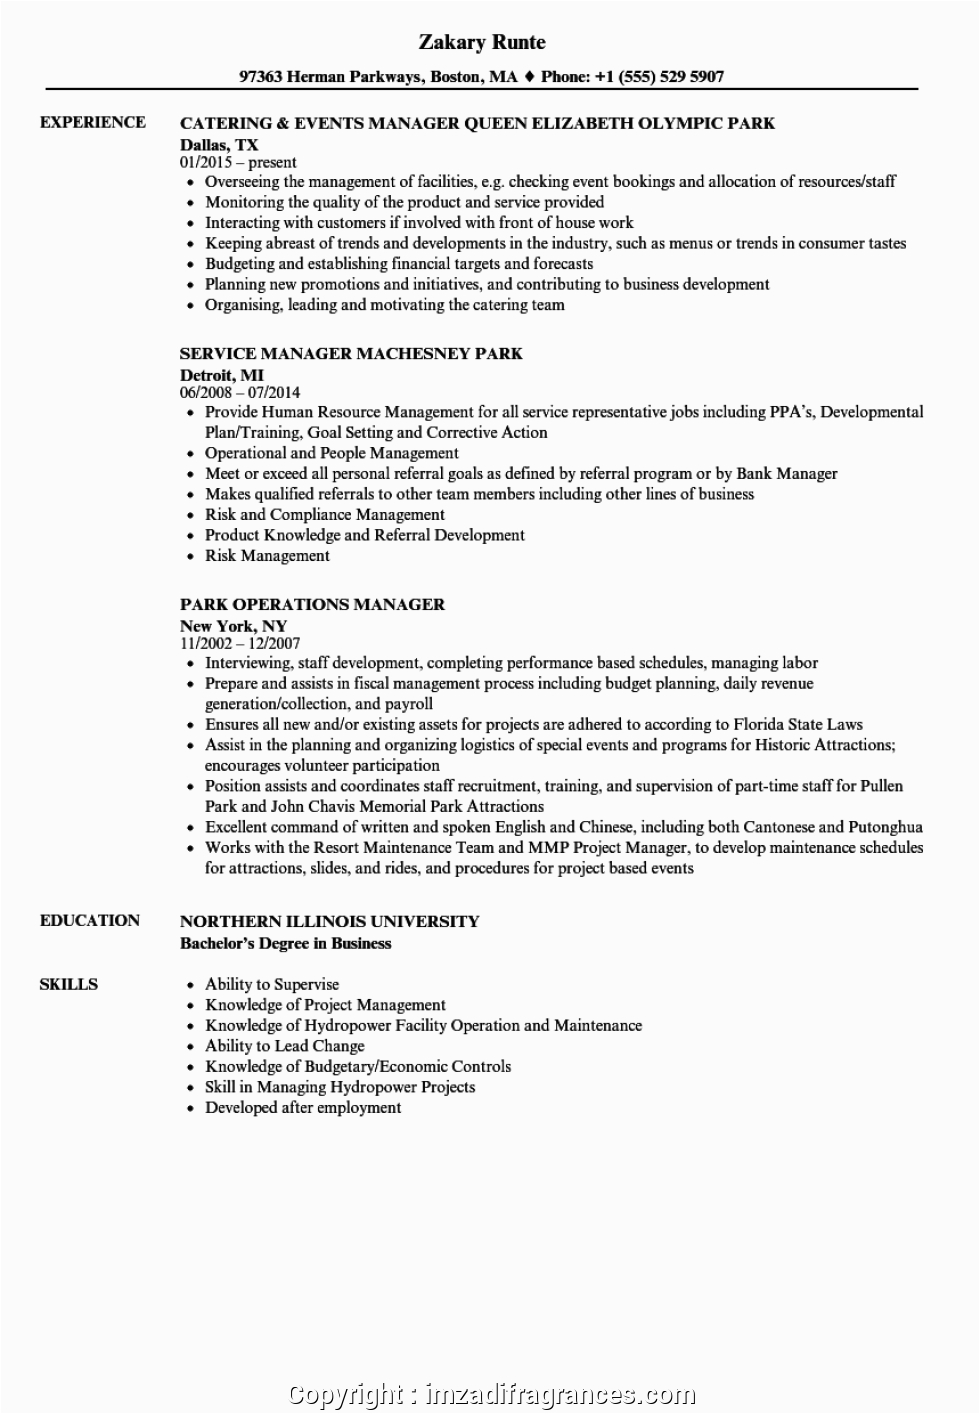 new duty manager resume